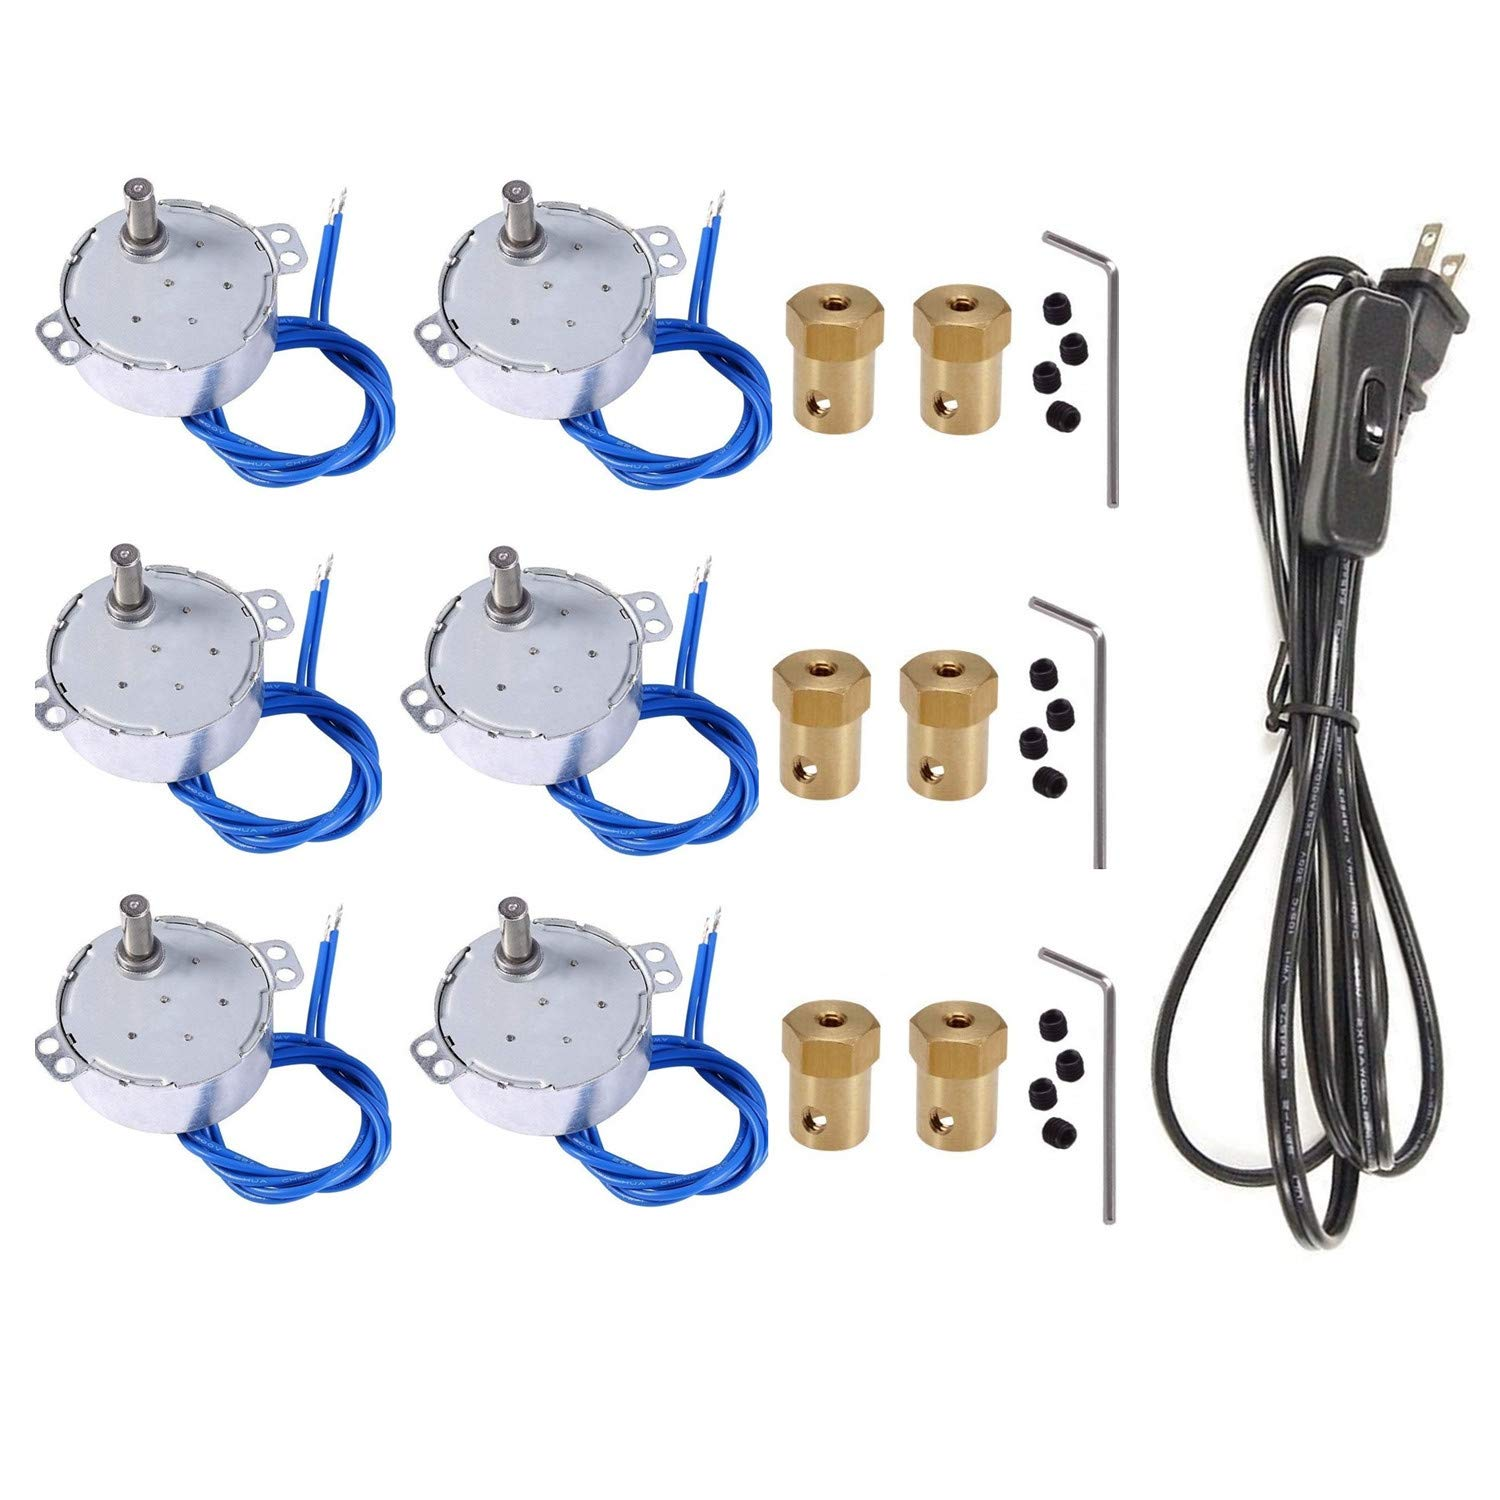 6PCS Synchronous Synchron Motor Turntable Motor 50/60Hz AC100~127V CCW/CW 4W with 7mm Flexible Coupling Connector And 6ft Power Cord Switch Plug For Cup Turner,Cuptisserie,or Guide Motor (5-6RPM)